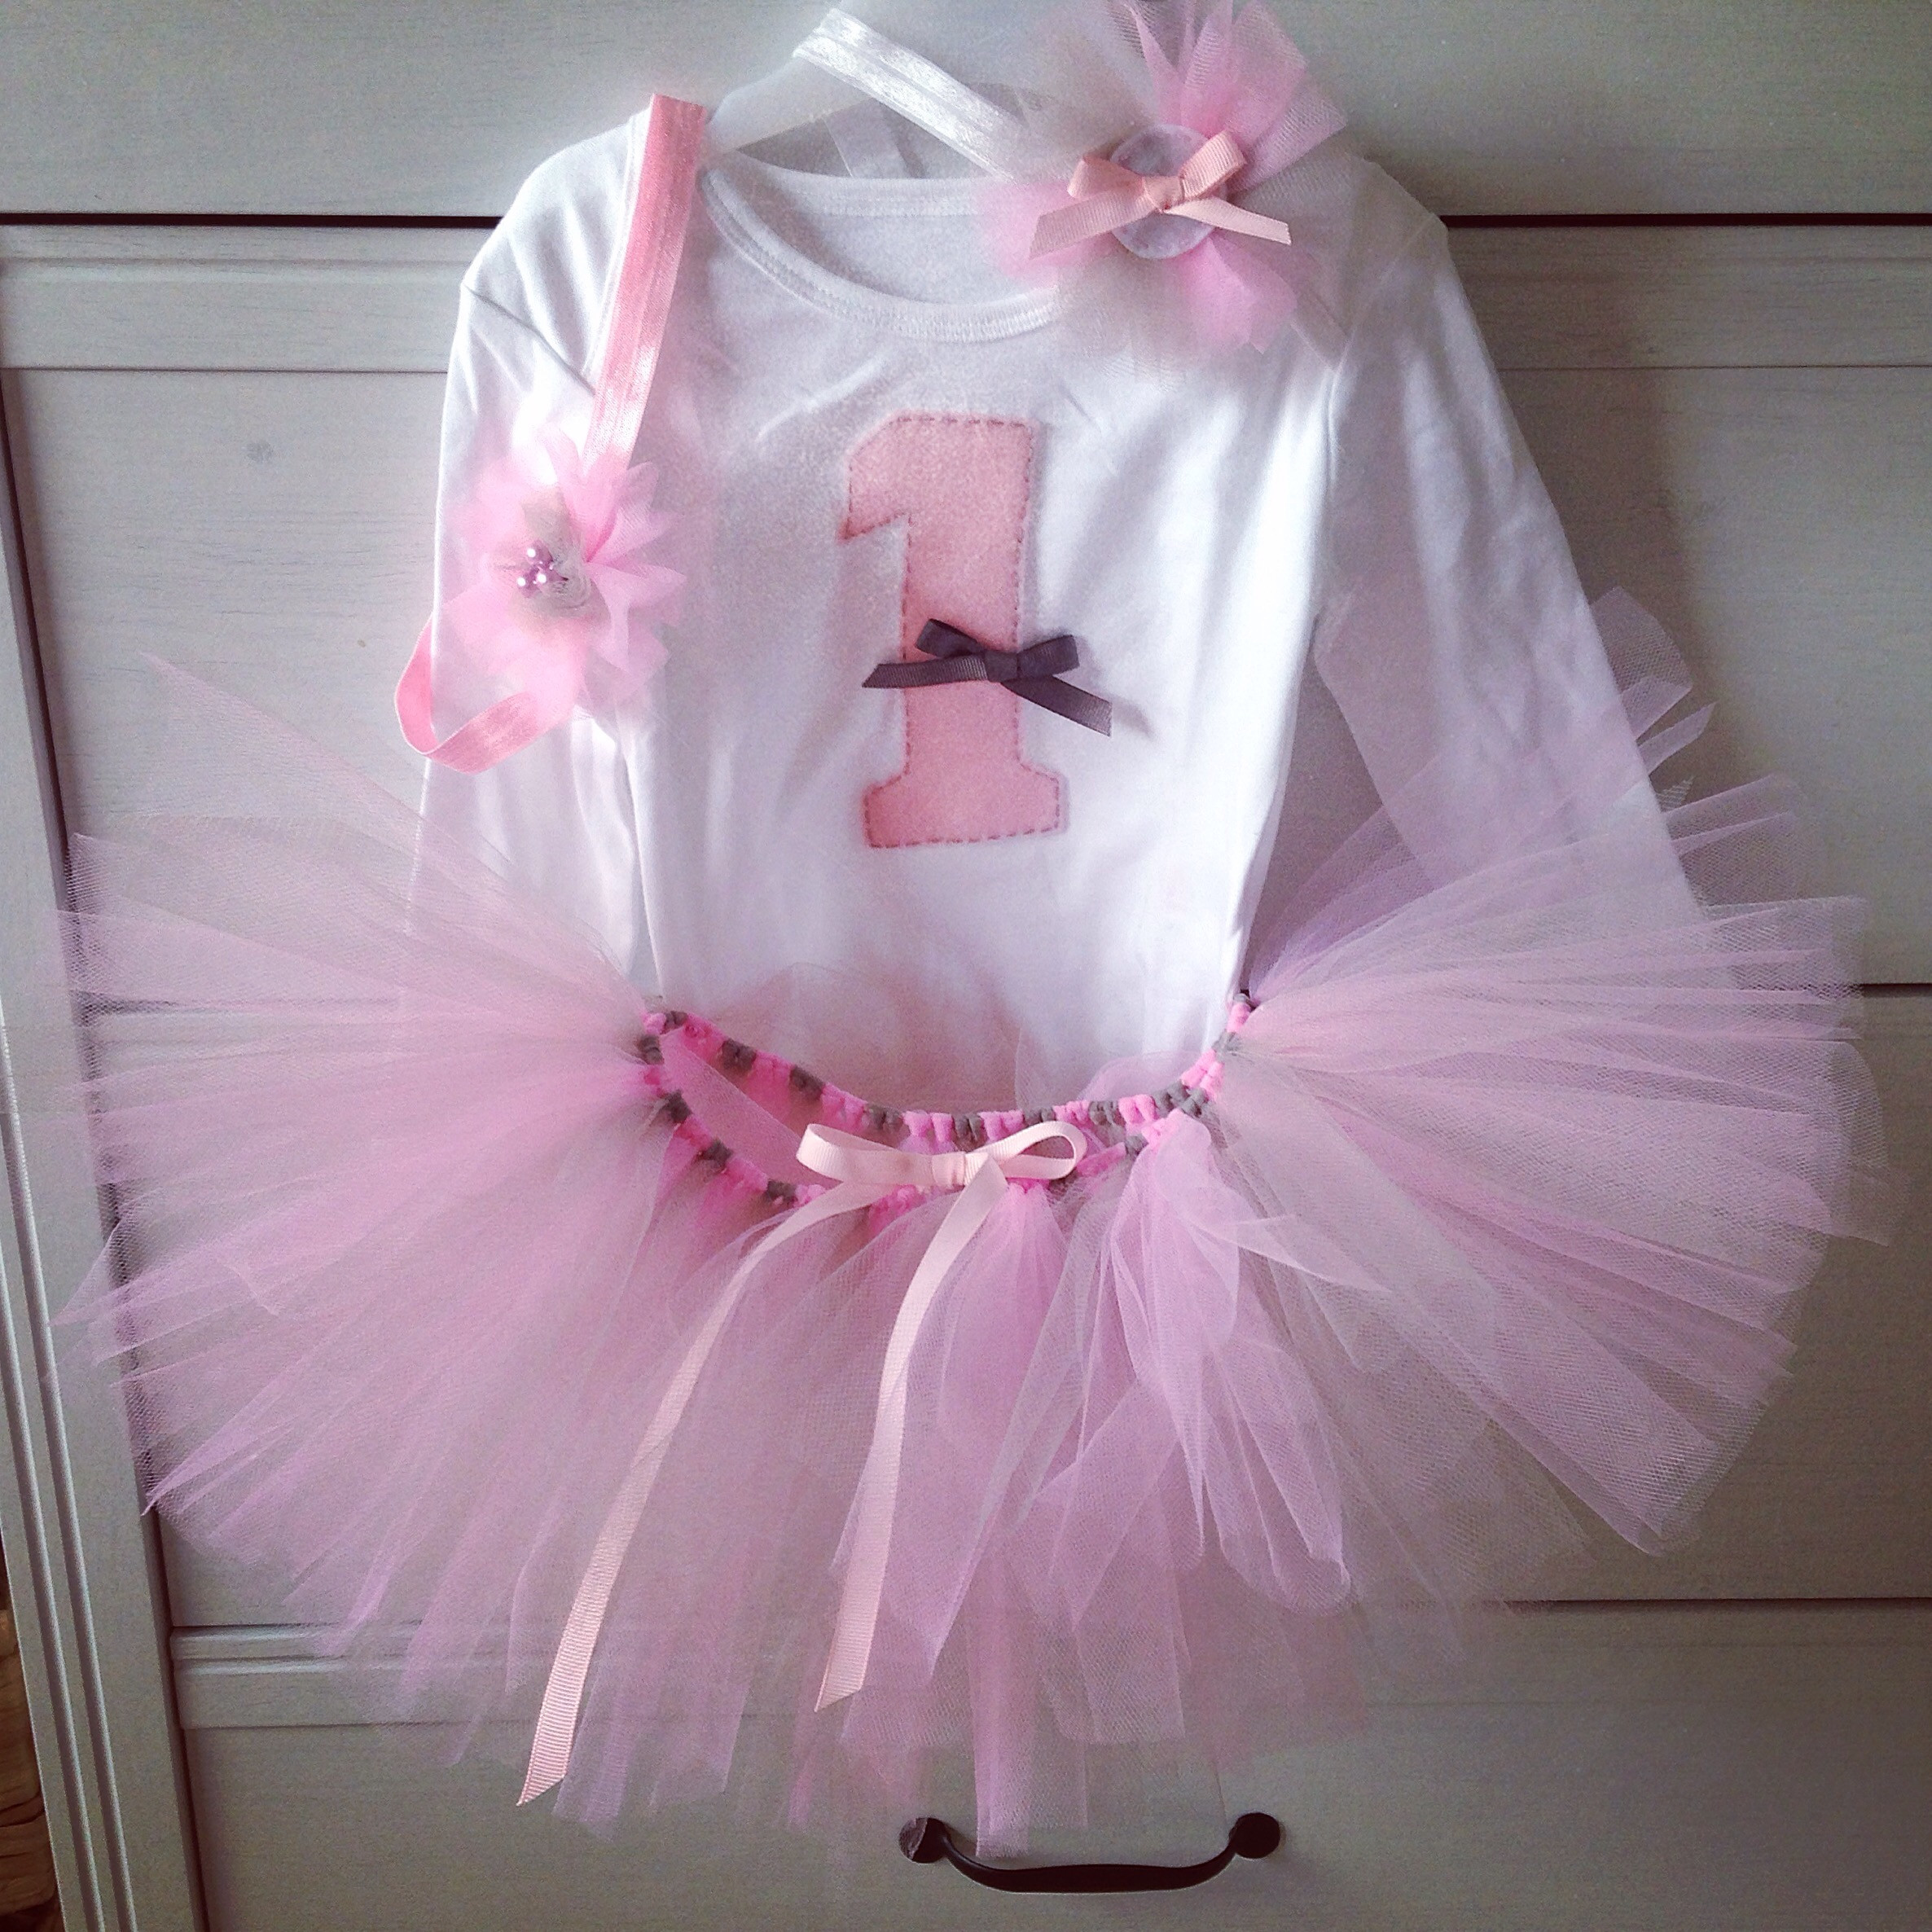 Best ideas about Baby Tutu DIY . Save or Pin DIY tutu skirt no sew – The Crafty Mummy Now.